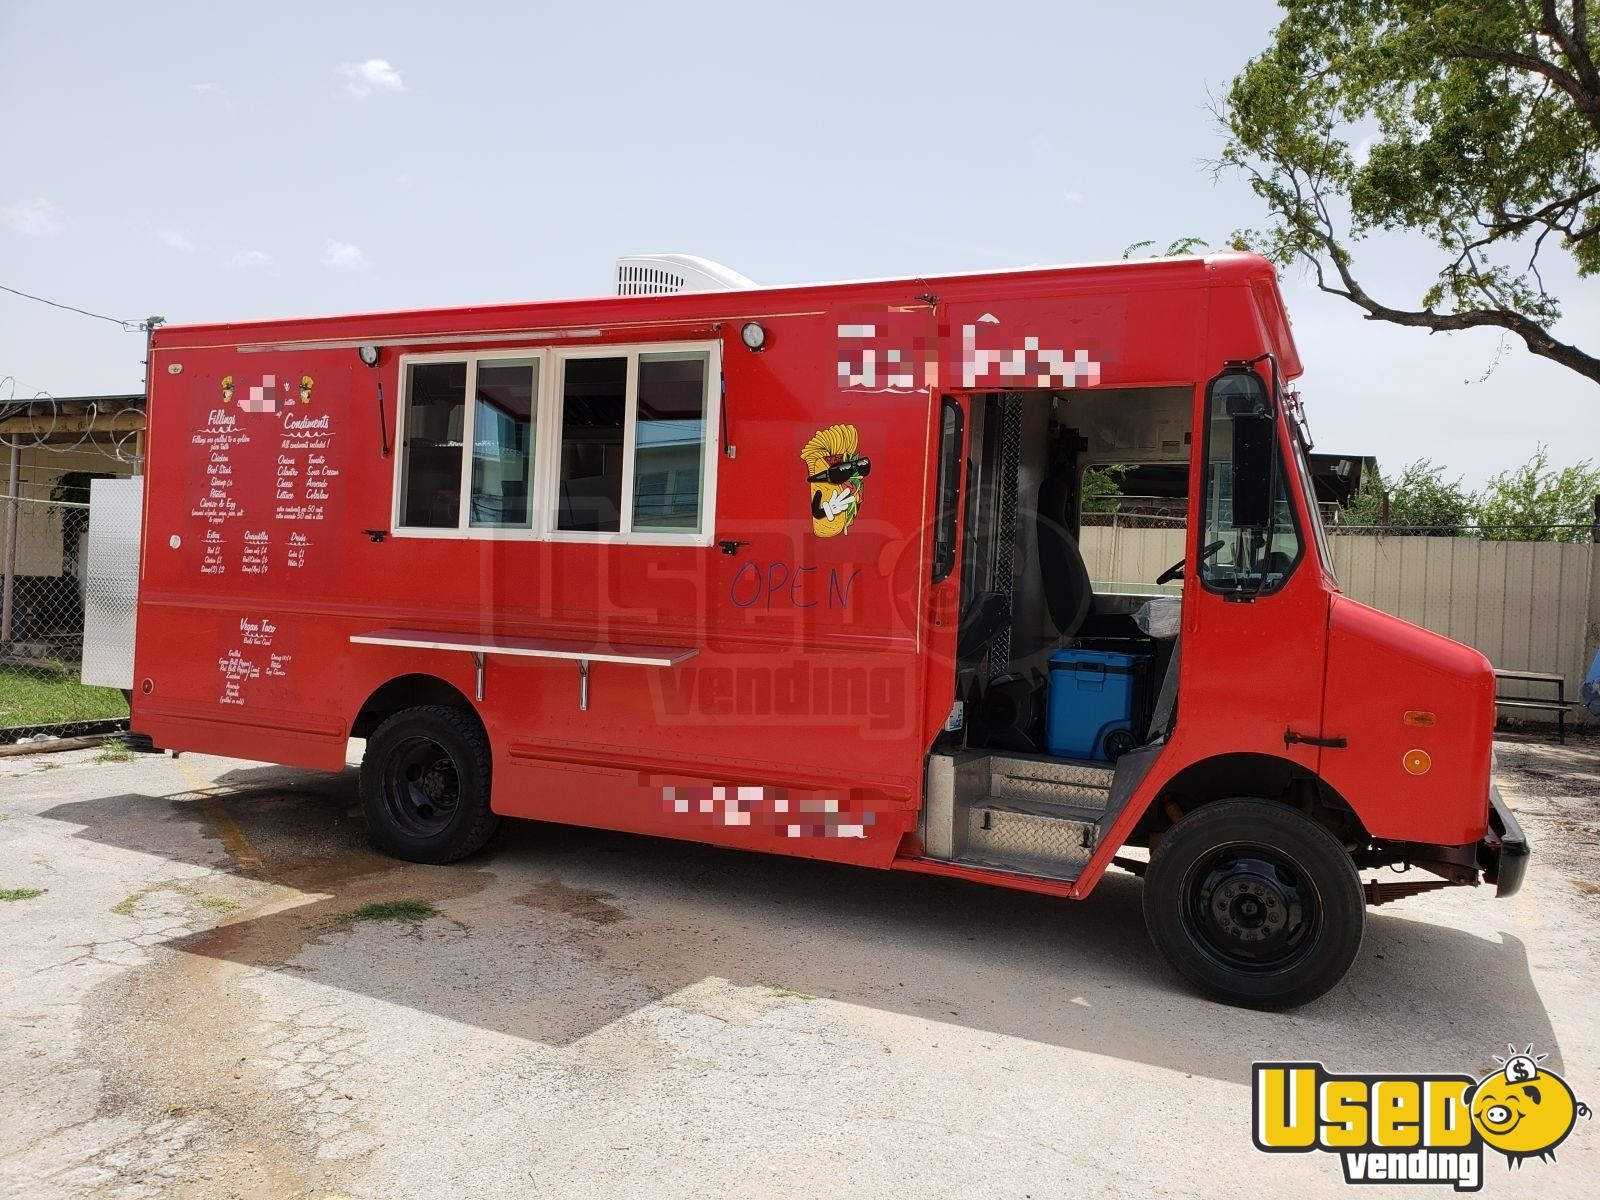 2000 Chevy Workhoarse All-purpose Food Truck Air Conditioning Texas Gas Engine for Sale - 2